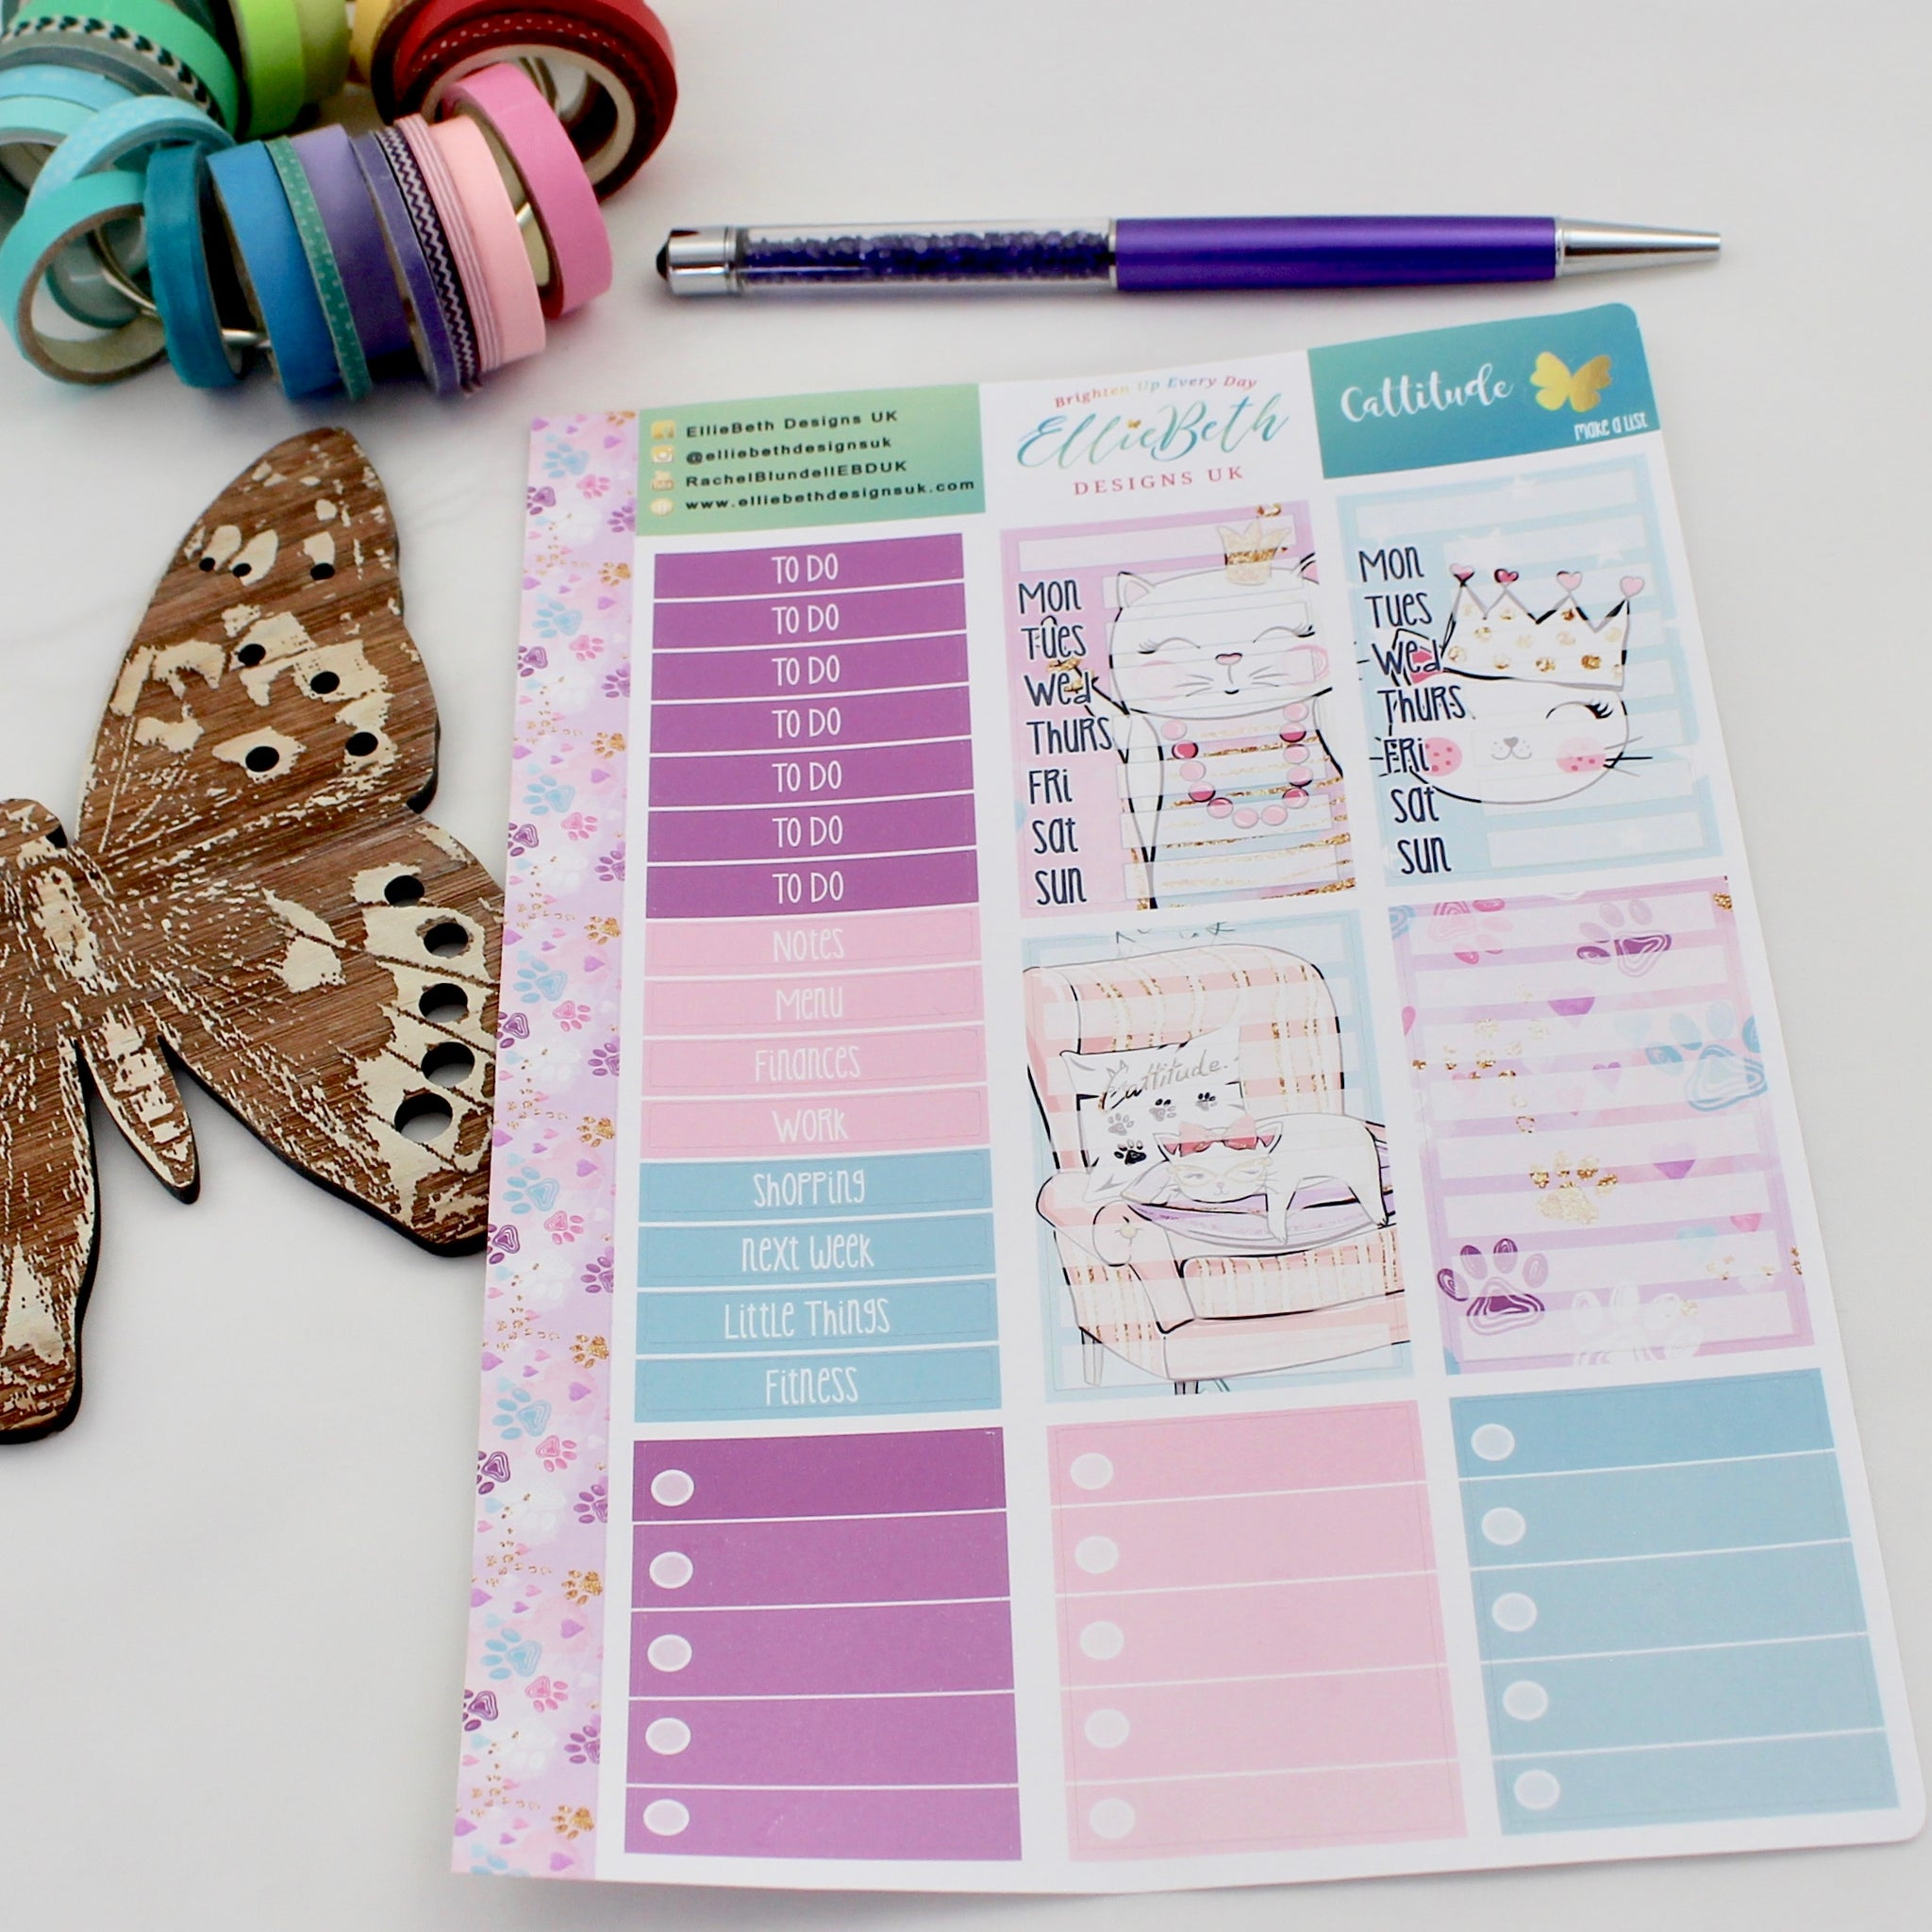 'Cattitude' - Make a List Sheet -  A5 binder ready planner stickers - EllieBeth Designs UK